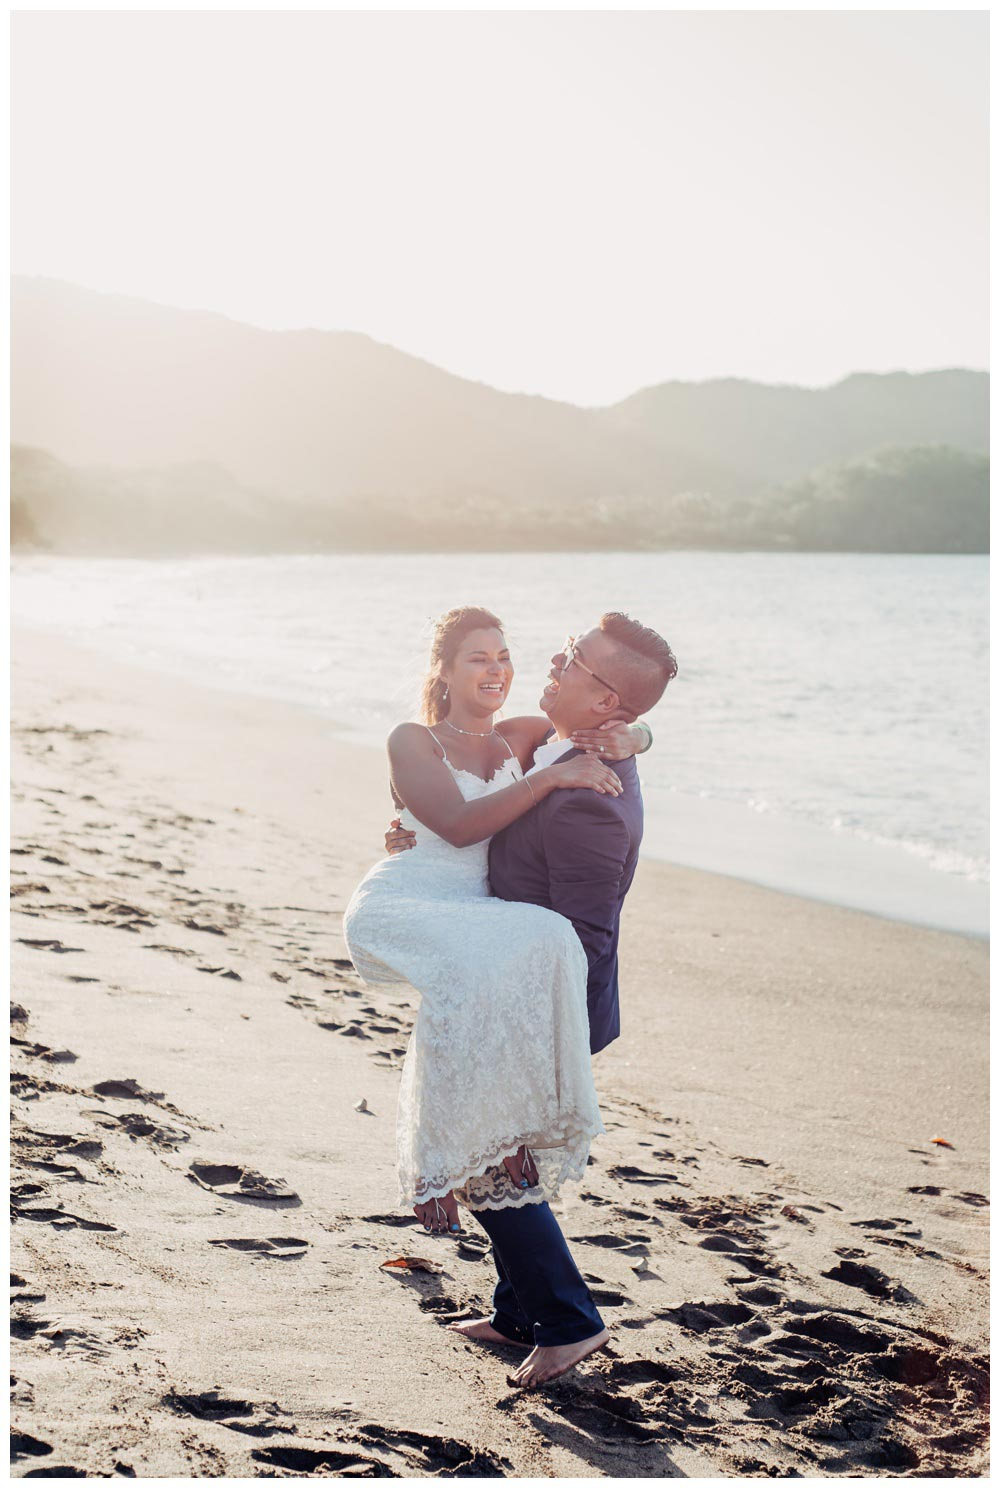 Groom carrying his bride on the beach in Costa Rica. Wedding in Guanacaste Costa Rica. Photographed by Kristen M. Brown, Samba to the Sea Photography.